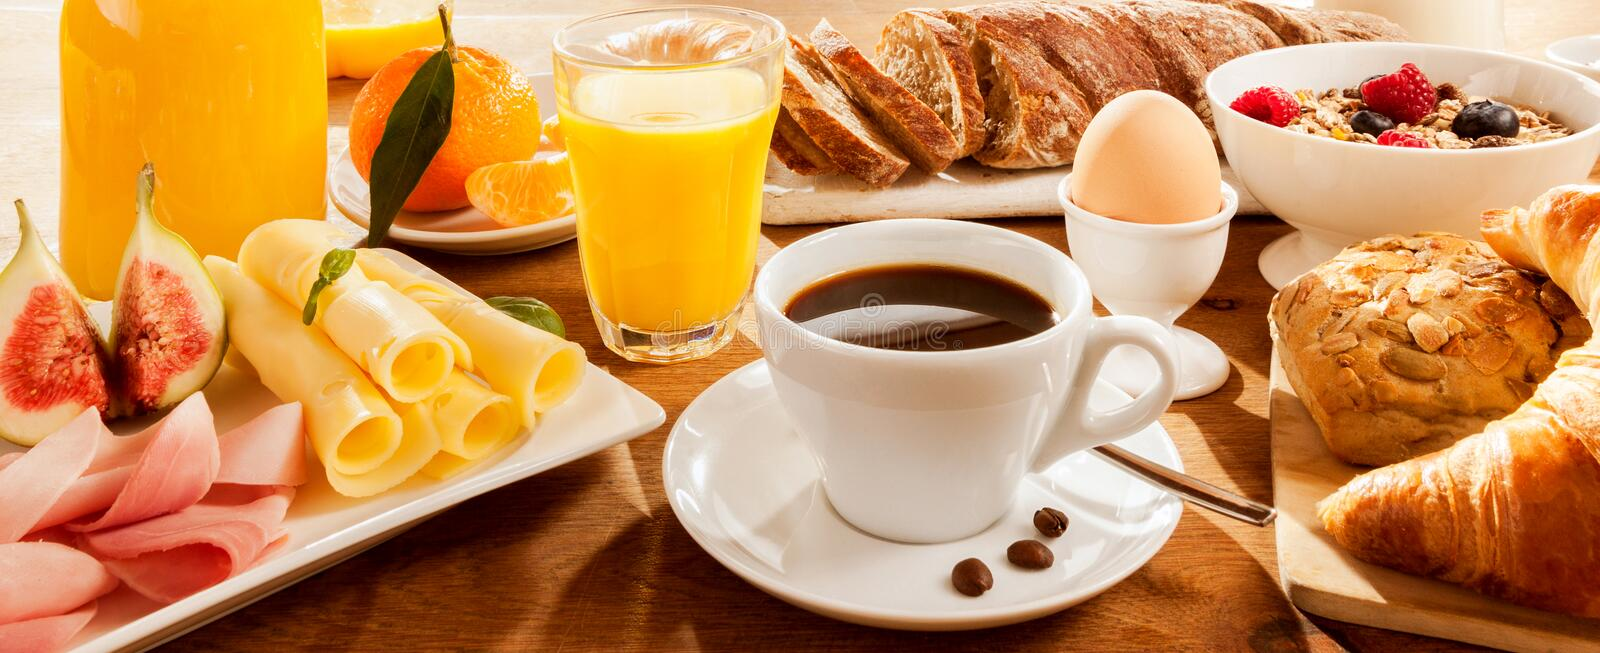 Full breakfast on table. Full breakfast with figs, egg, meat, bread, coffee and juice stock image